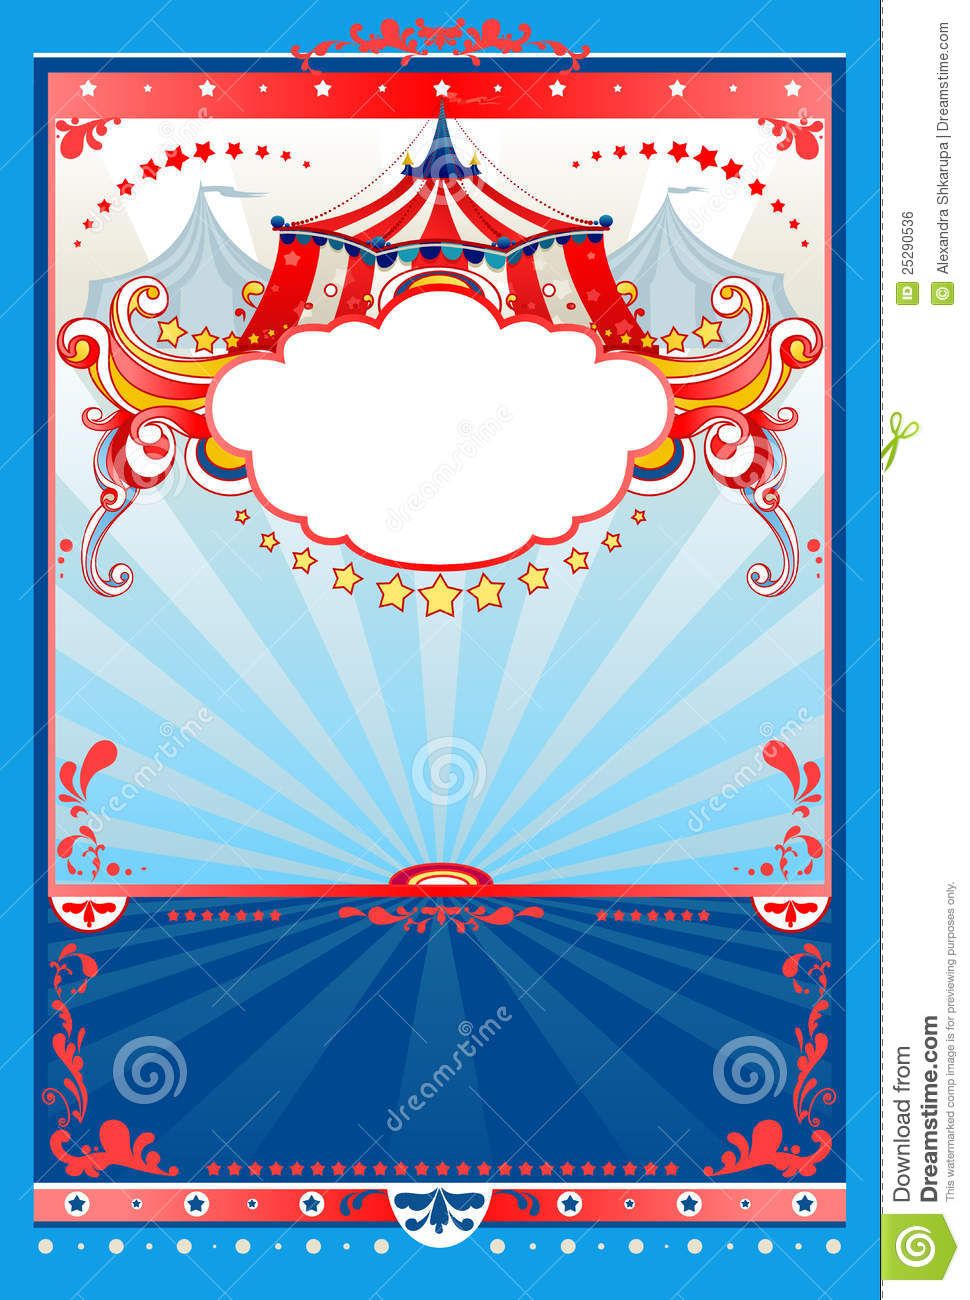 circus background royalty free stock image image 25290536